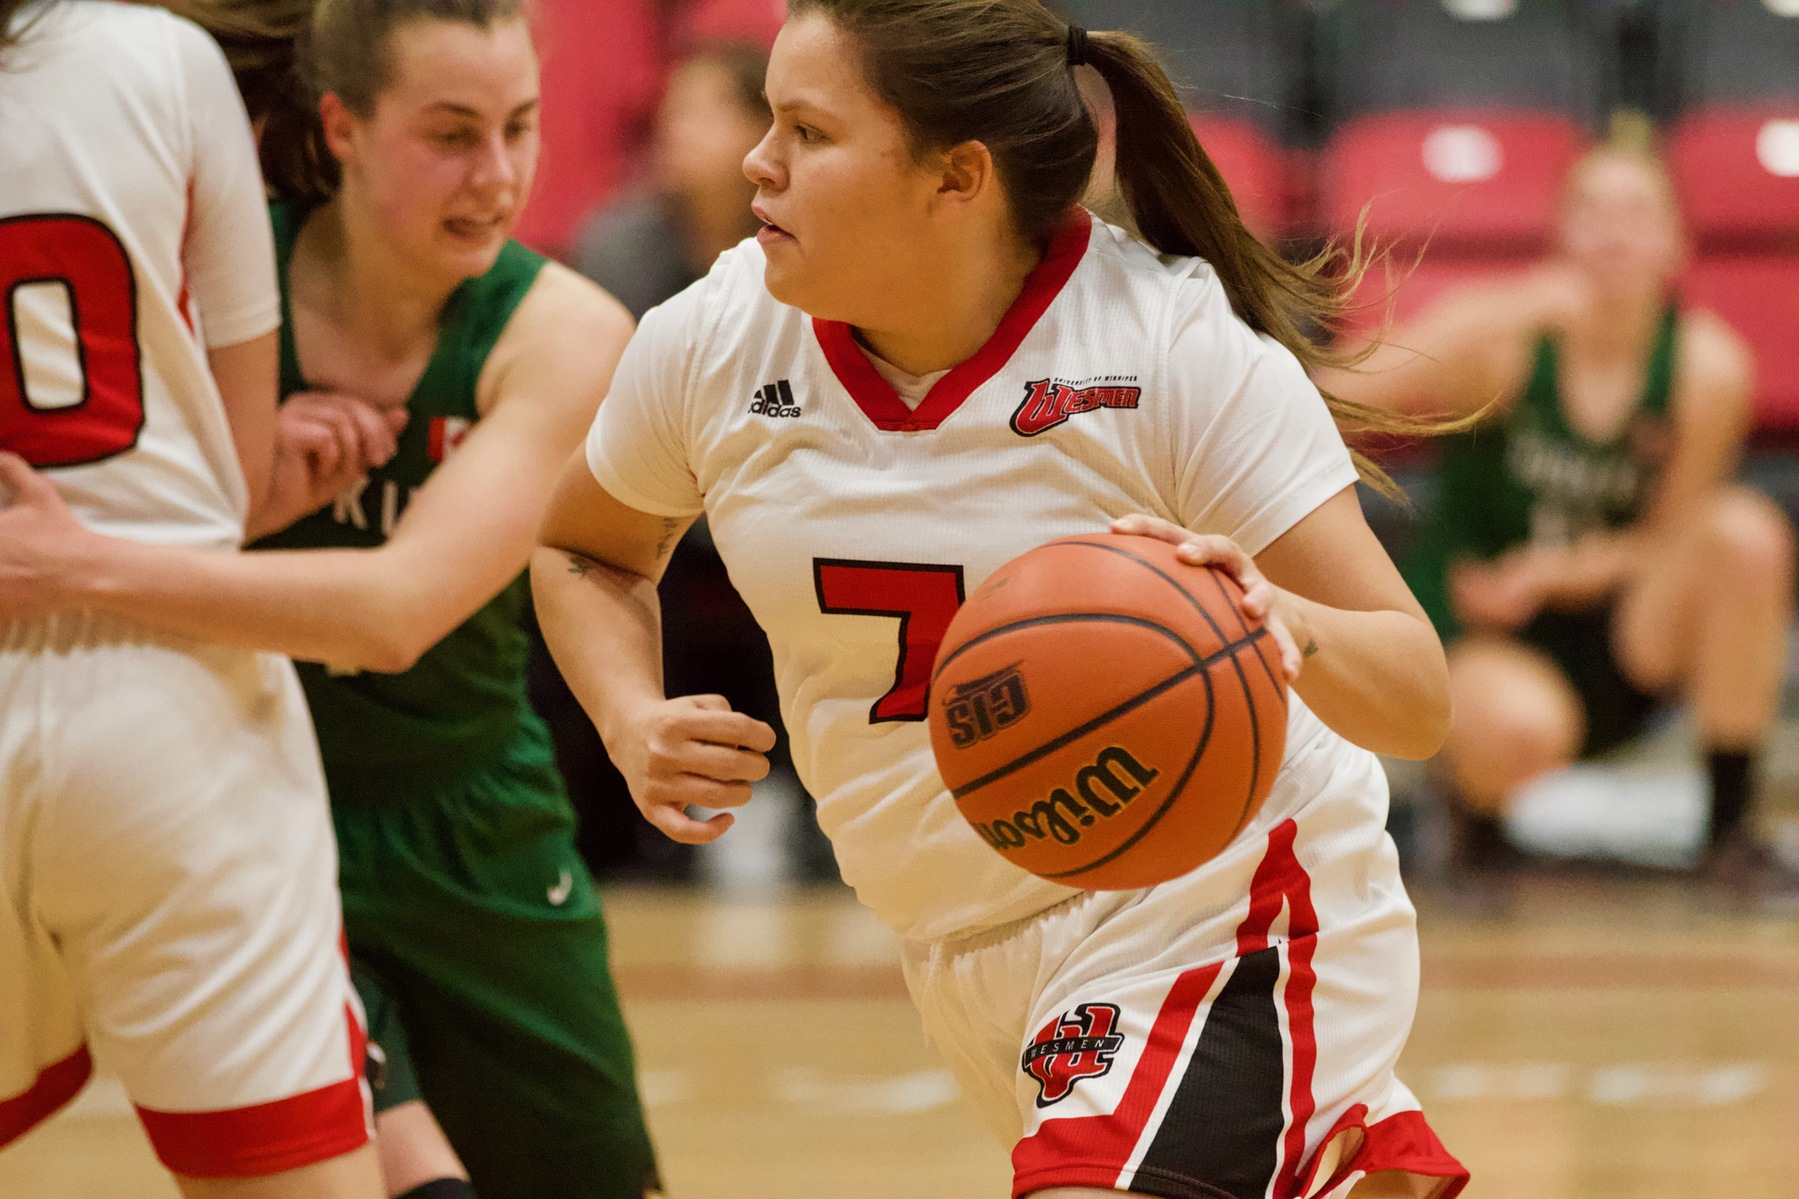 Robyn Boulanger had 12 points off the bench in the Winnipeg Wesmen's loss to the Lethbridge Pronghorns on Saturday, Nov. 24, 2018. (David Larkins/Wesmen Athletics file)